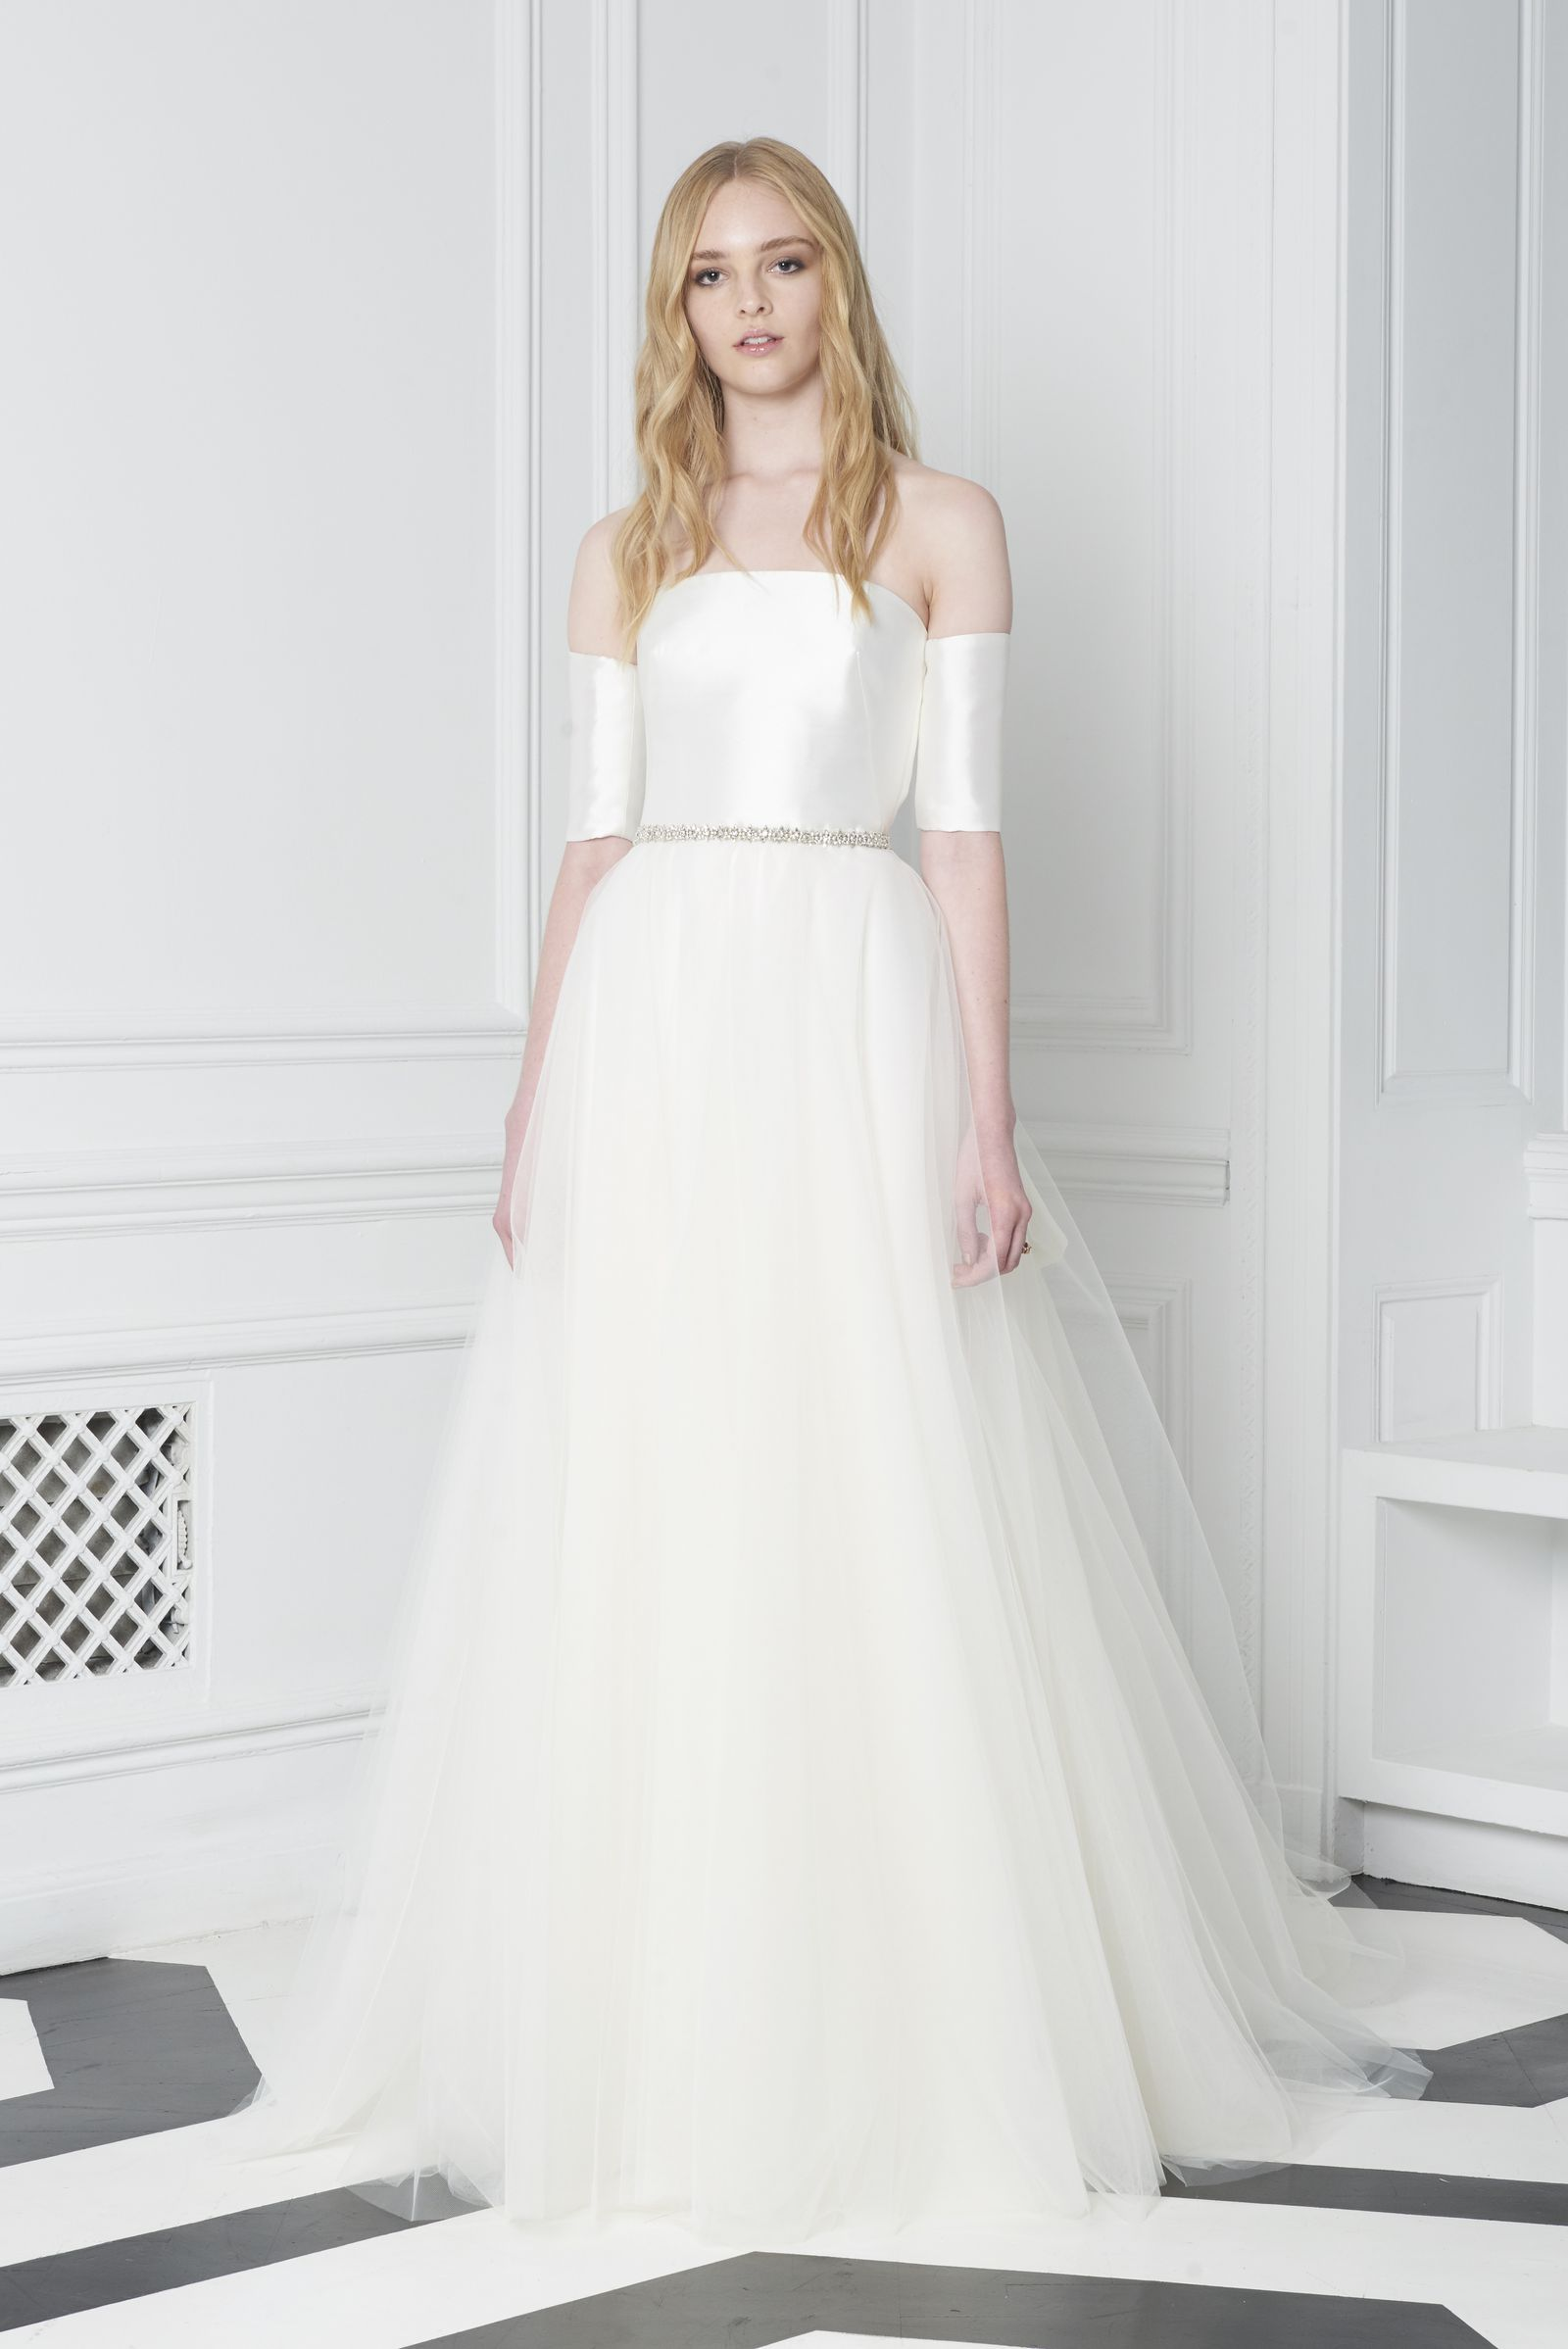 25 Simple Wedding Dresses From Fall 2018 Bridal Week   Monique ...